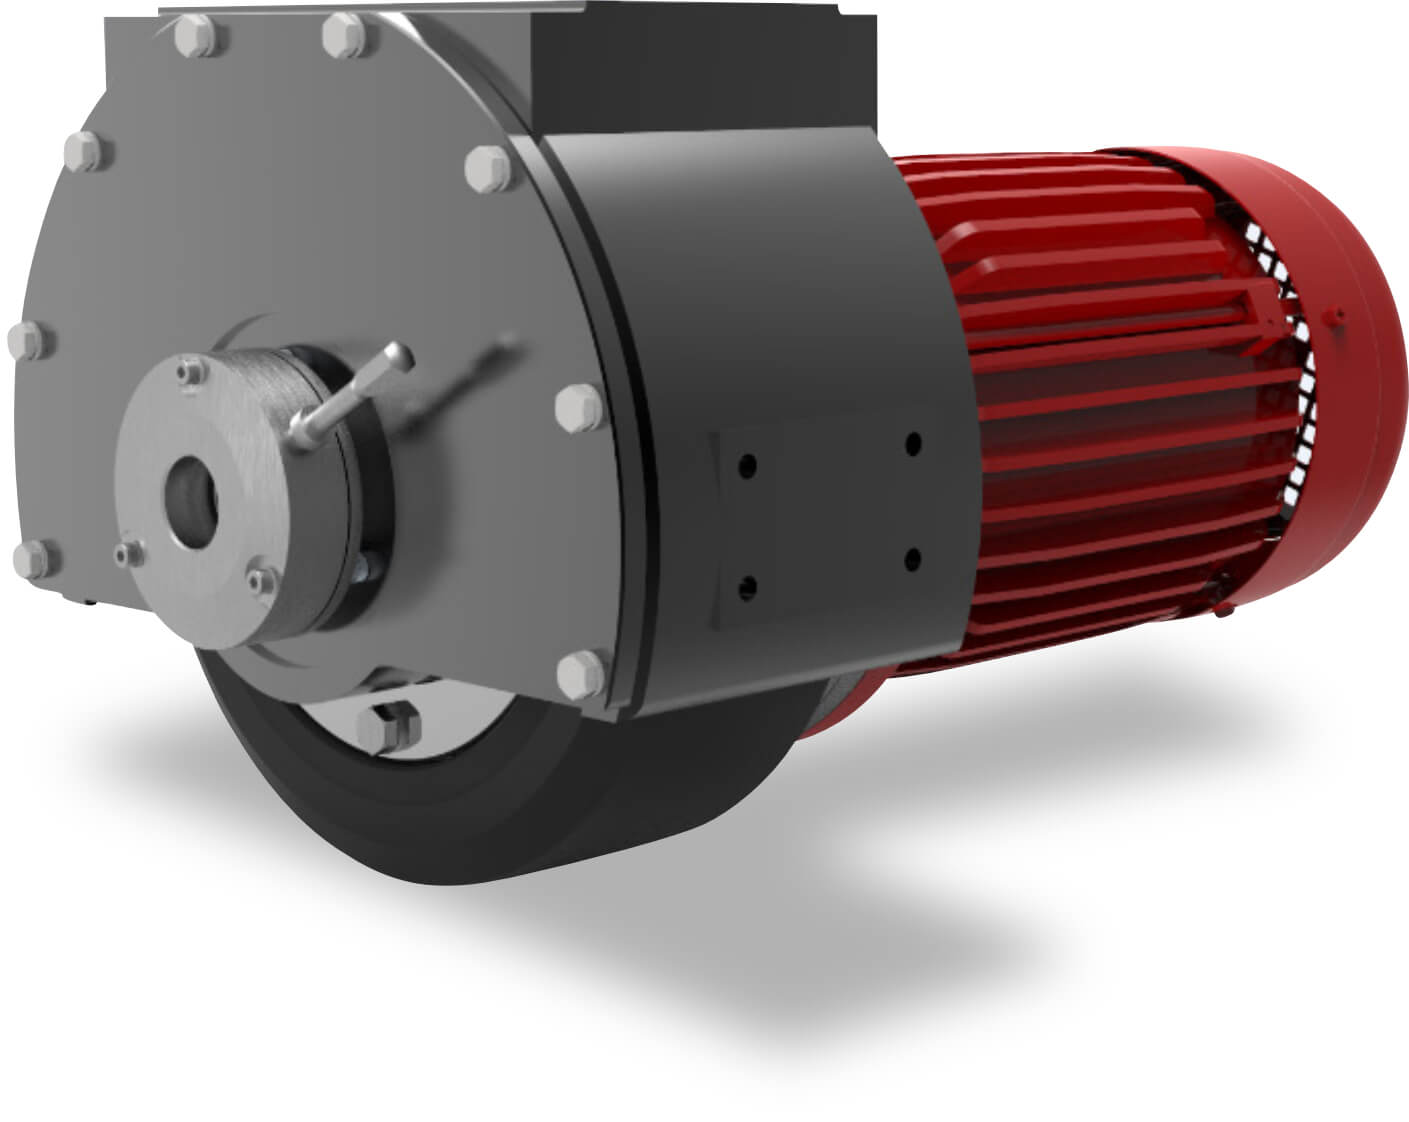 3D Image of a travel motor in side mounting design such as used on automatic guided vehicles and platforms